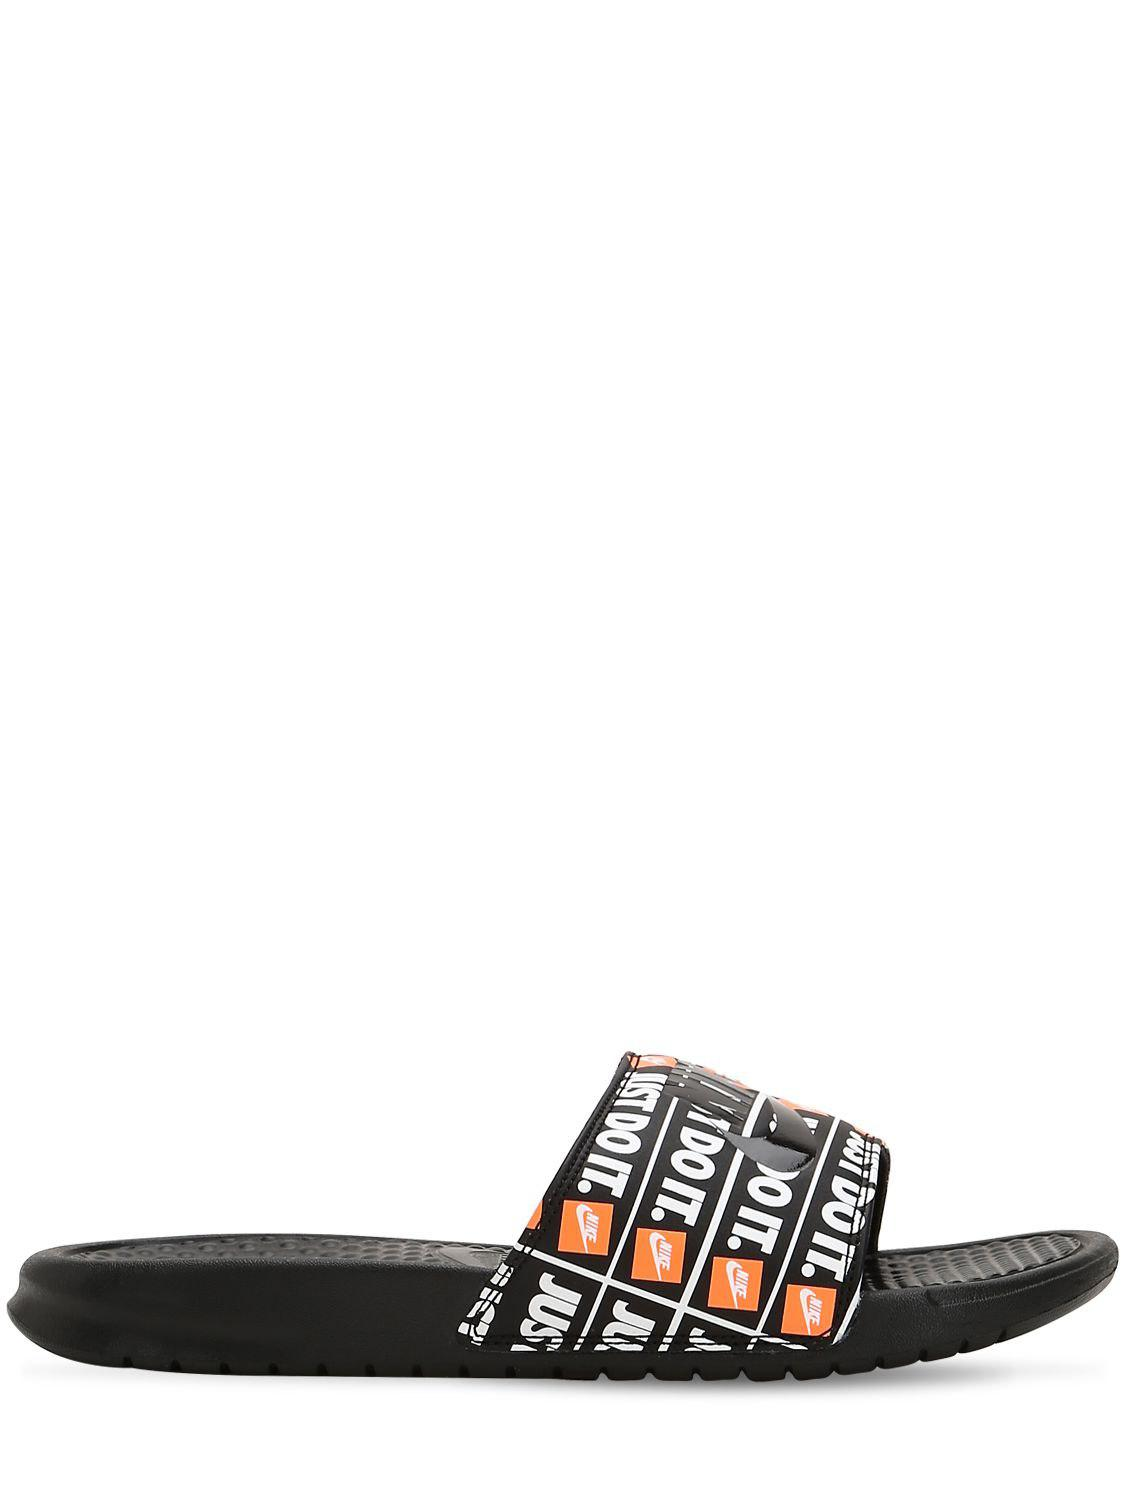 52717074b8f8 Lyst - Nike Benassi Just Do It Print Slide Sandals in Black for Men ...